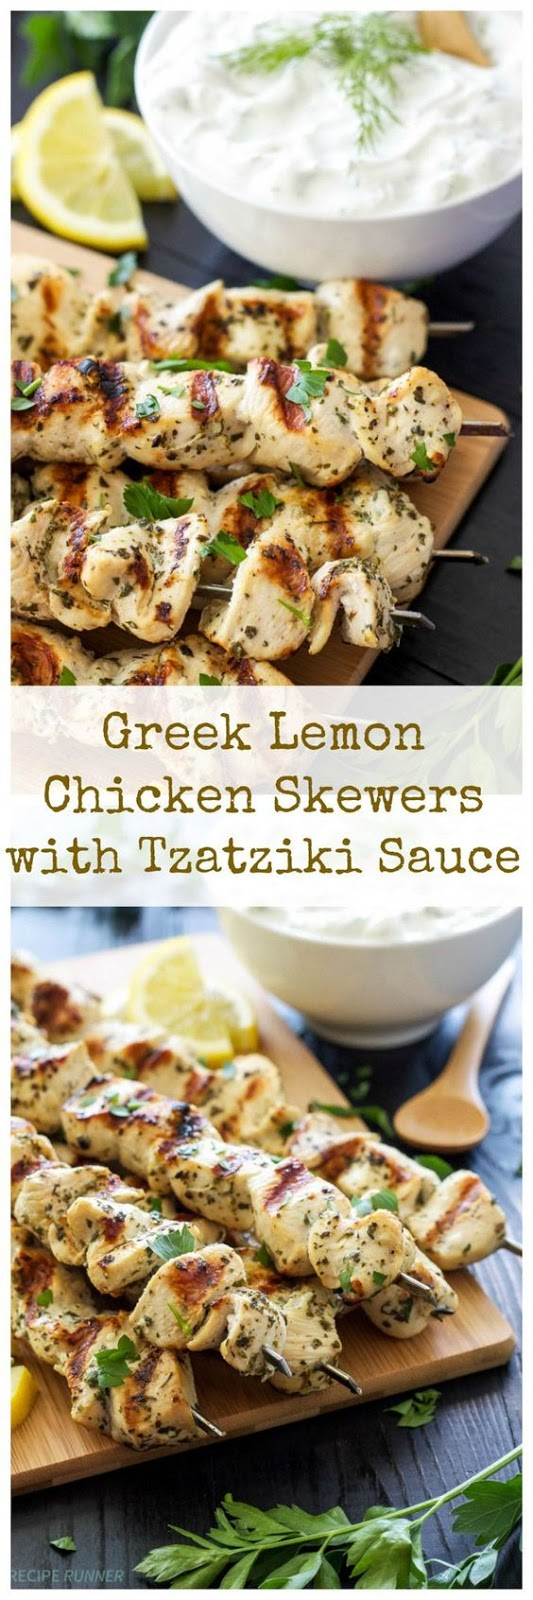 GREEK LEMON CHICKEN SKEWERS WITH TZATZIKI SAUCE